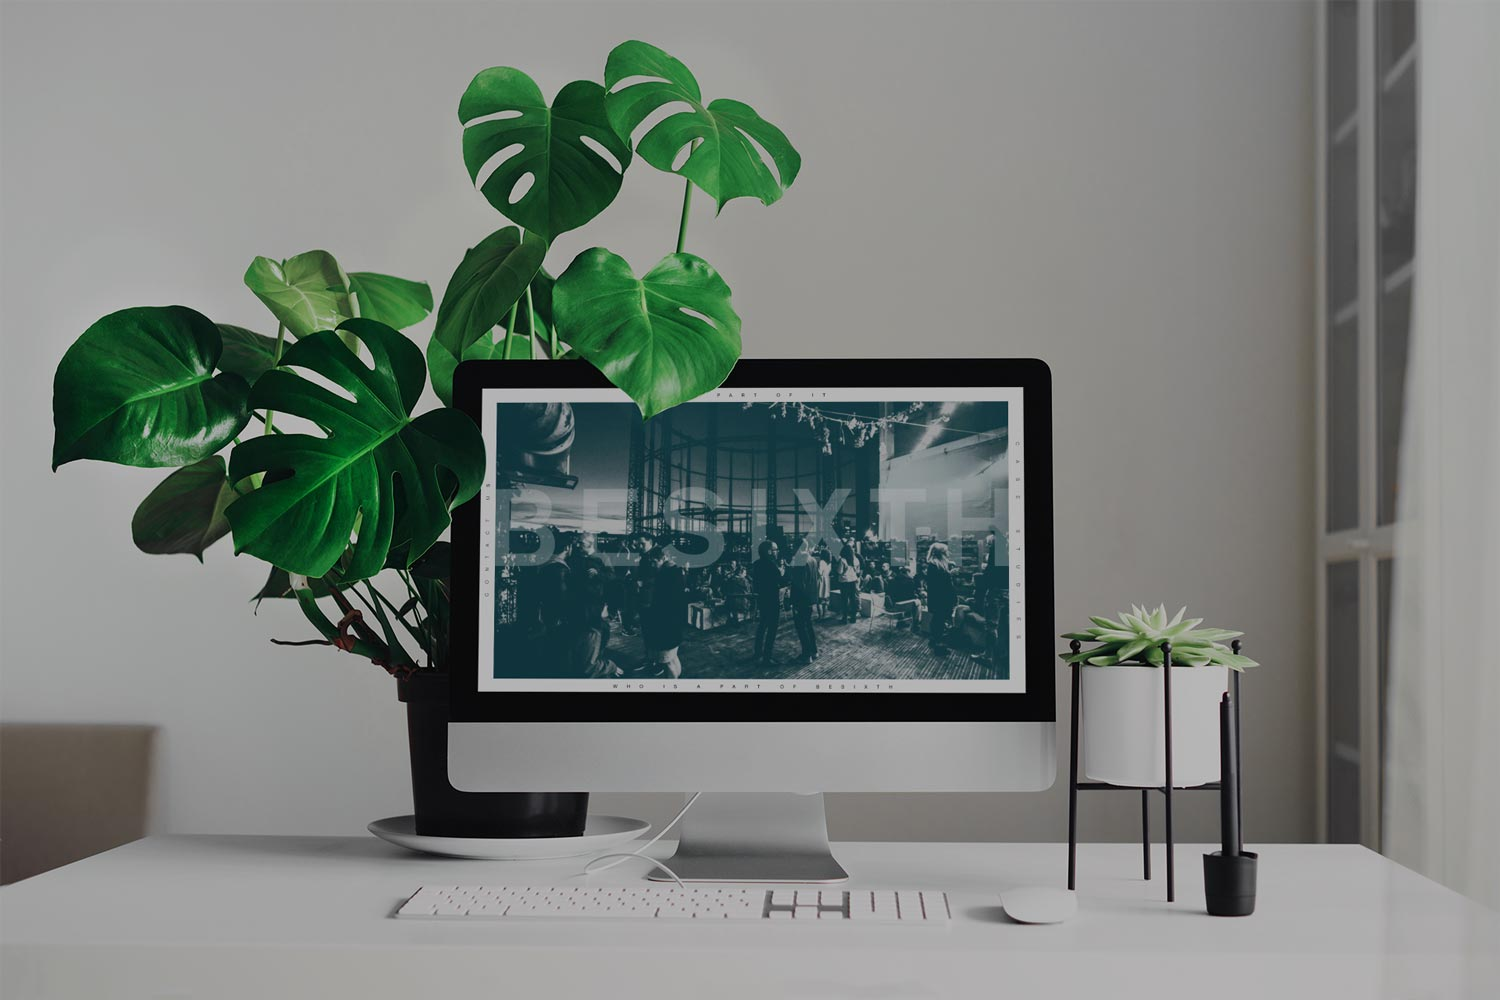 Besixth landing page displayed on a desktop computer at a desk with plants